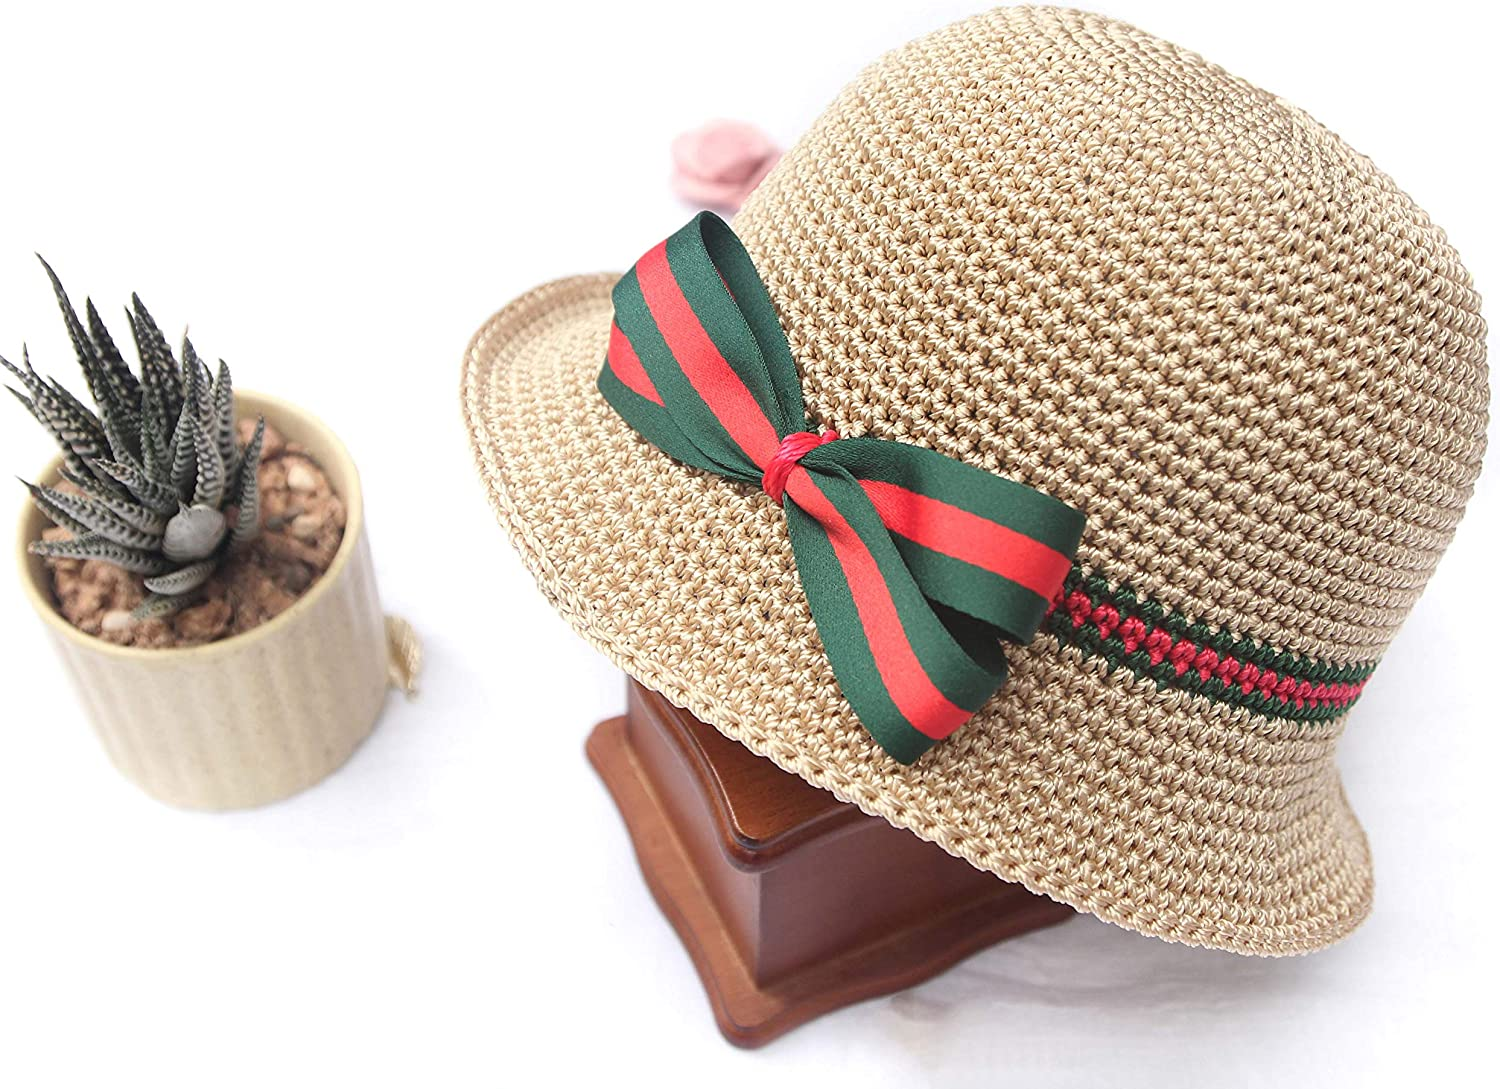 Crochet Baby Straw Hat for Girl - Toddler Straw Sun Hat with Wide Brim Sun Protection and Travel Beach for Baby and Mom